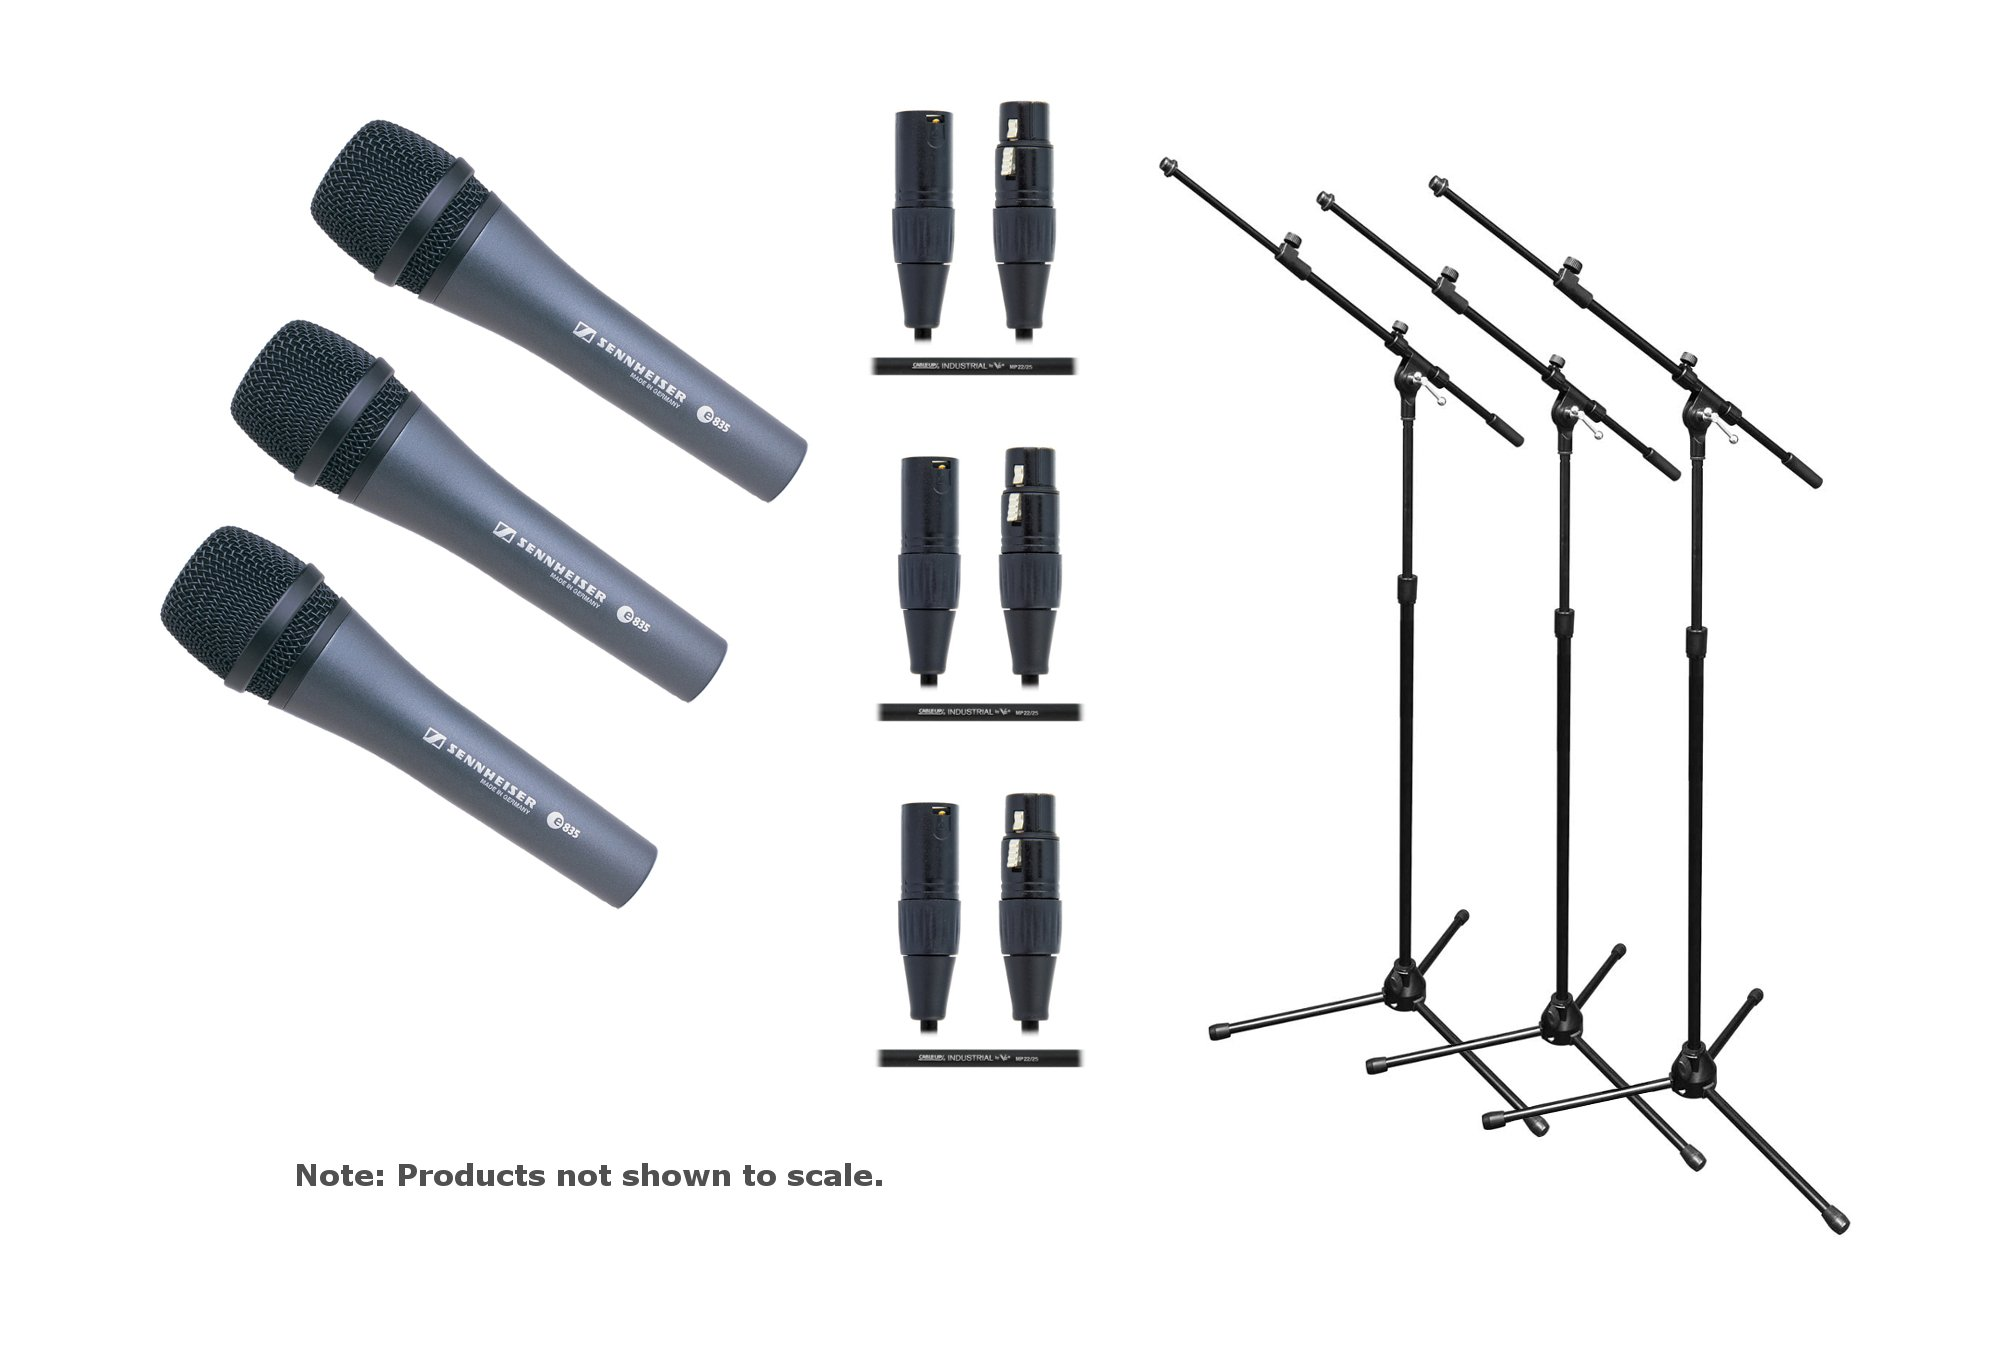 Sennheiser e 835 / Stand / Cable Tri-Bundle (3) e 835 Mics with (3) Tripod Mic Stands/Booms and (3) 20ft Cables E835-TRIO-K